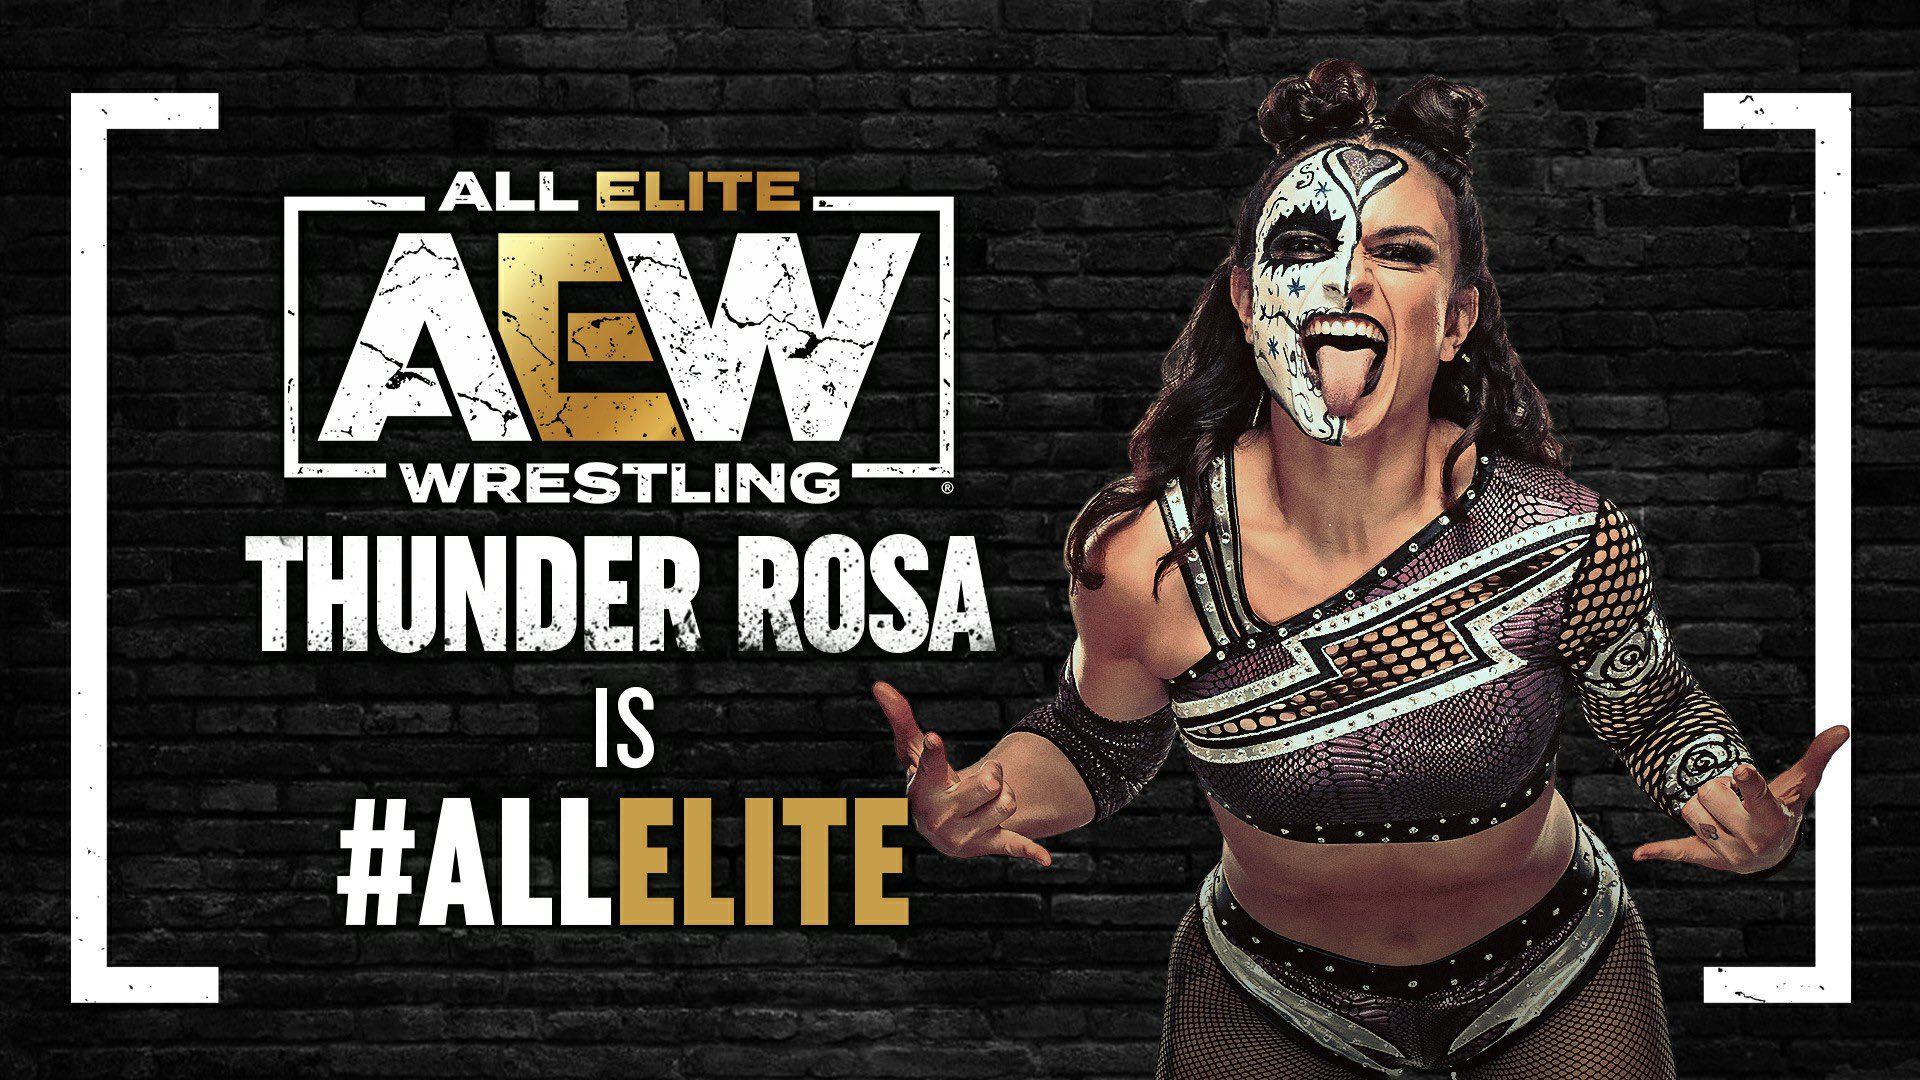 Thunder Rosa signs with All Elite Wrestling